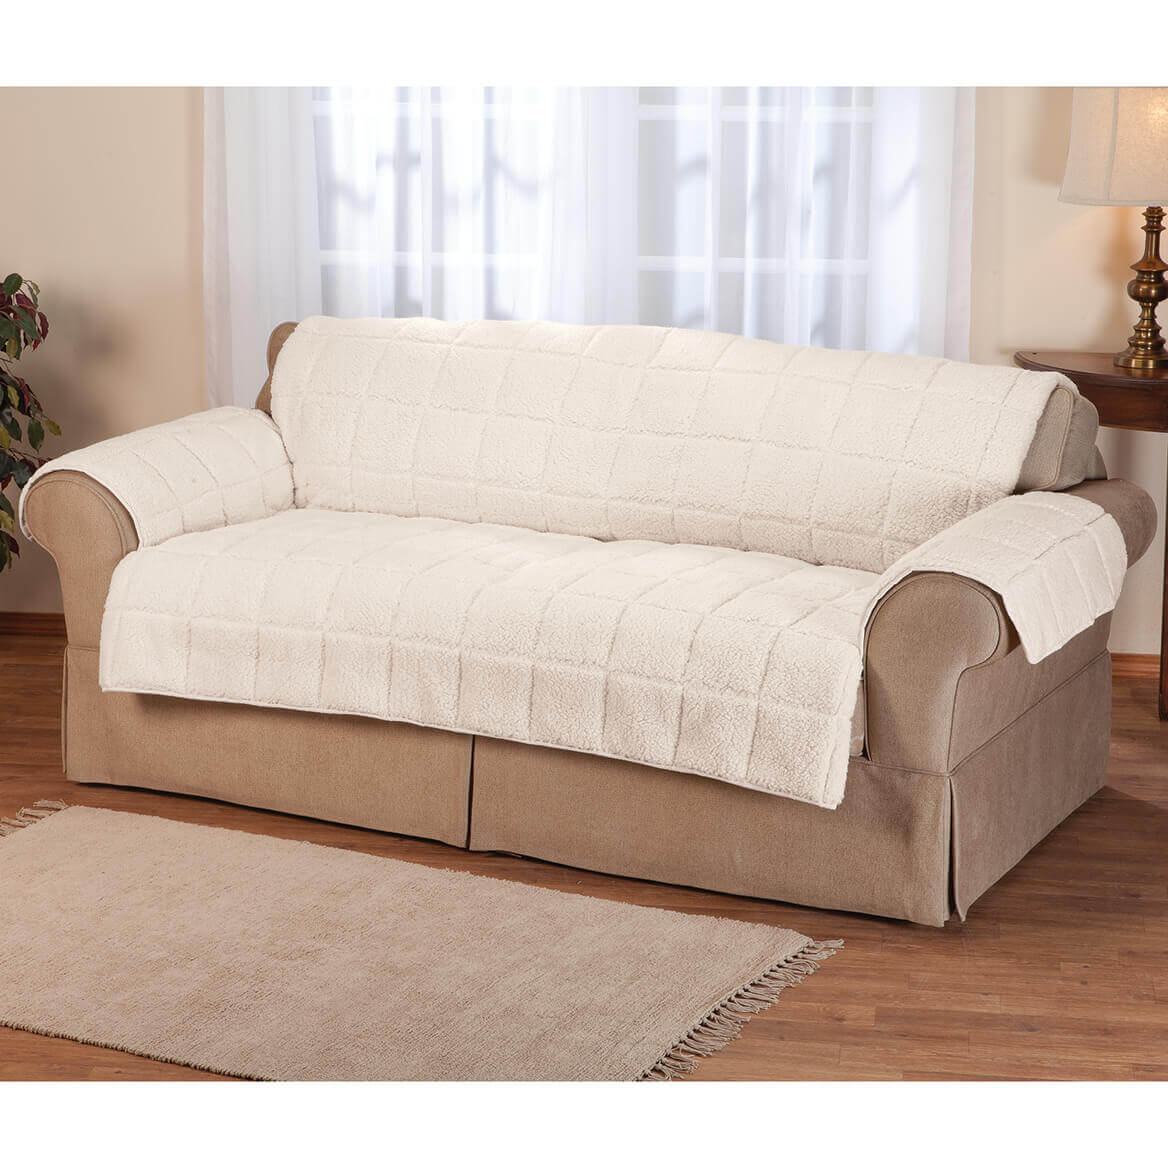 Waterproof Quilted Sherpa Loveseat Protector by OakRidge™-351695